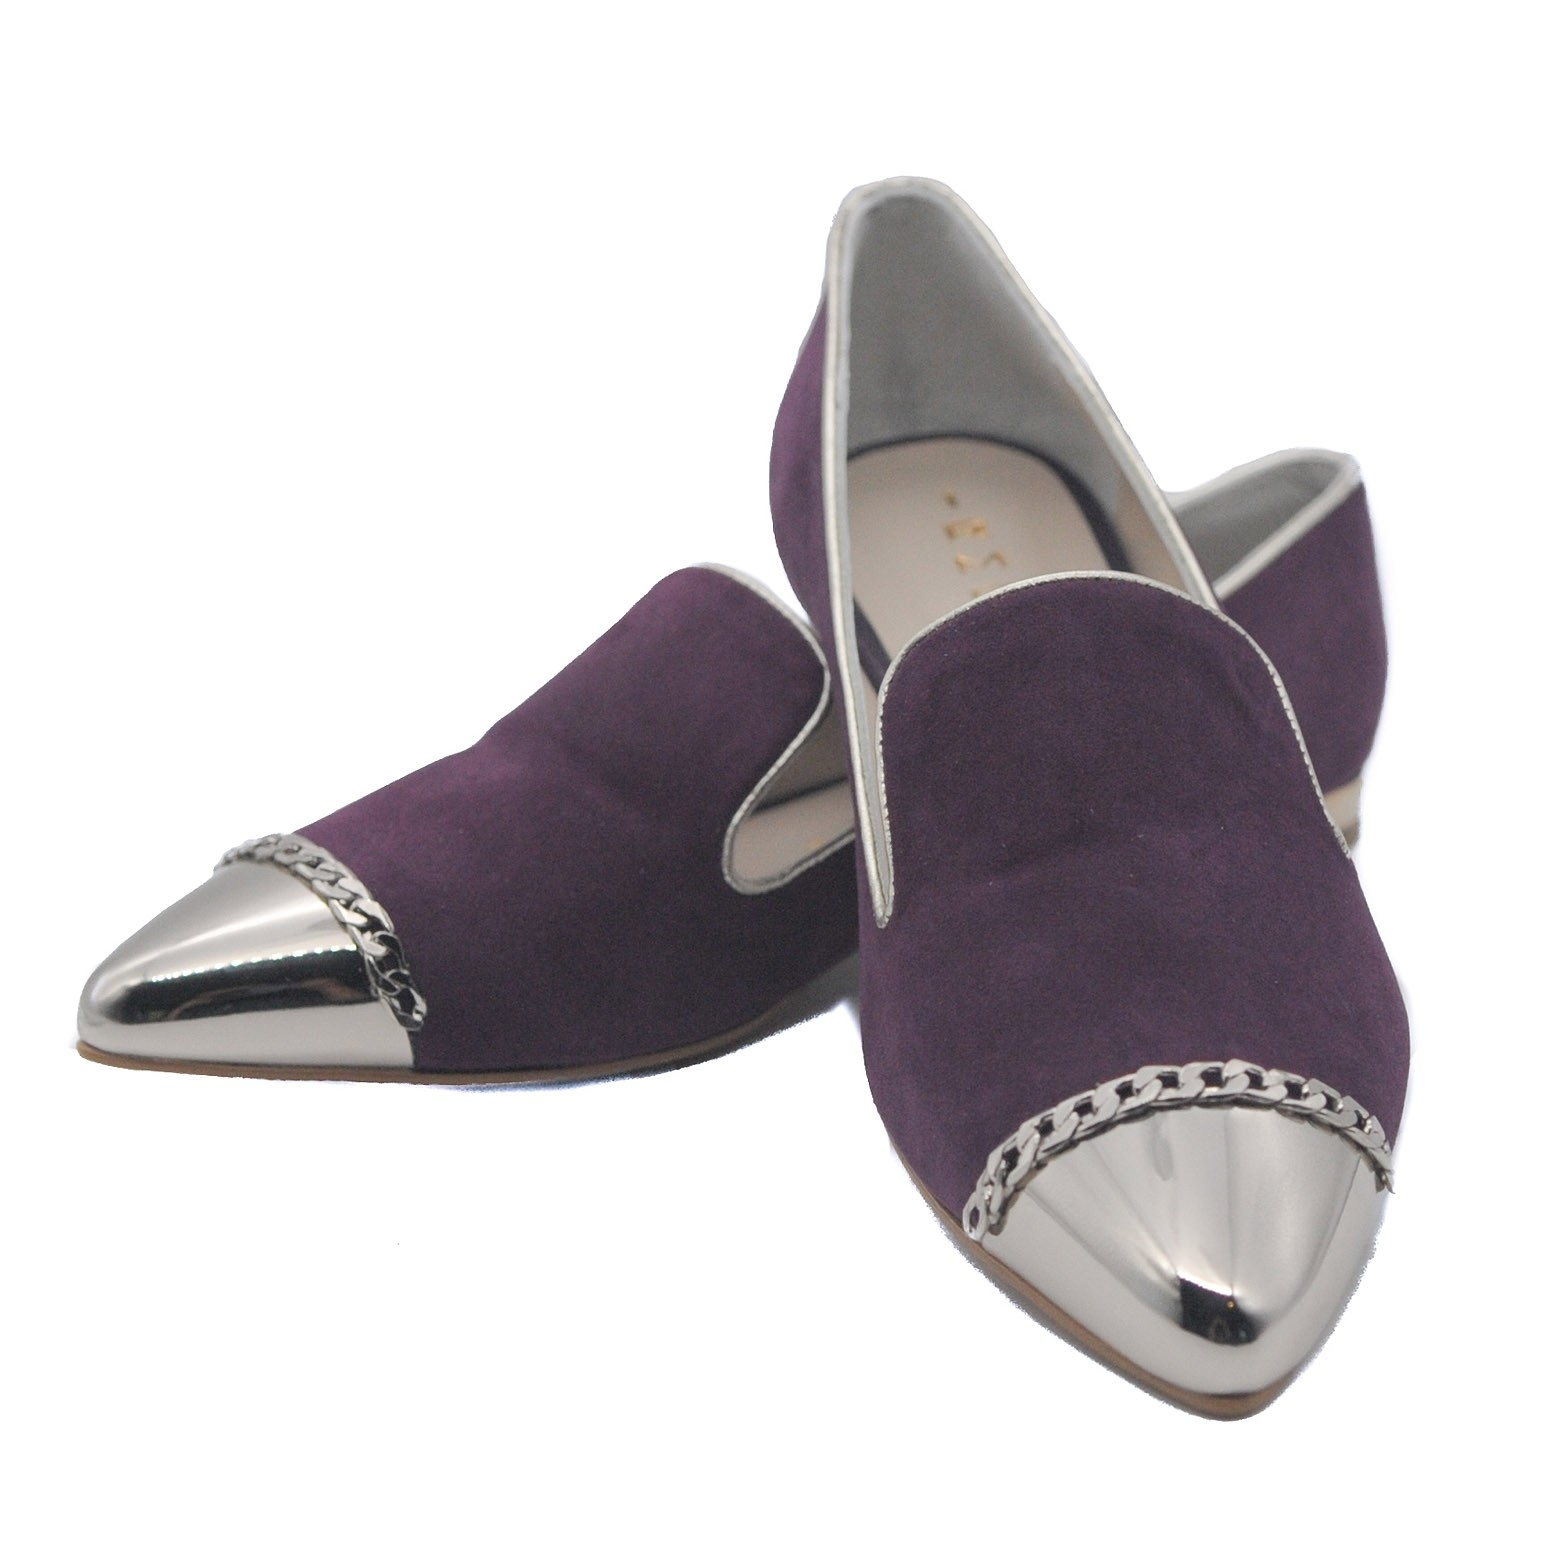 Goody2Shoes Ladies Slipper Pumps Flats in Plum Suede with Silver Pointed Toe